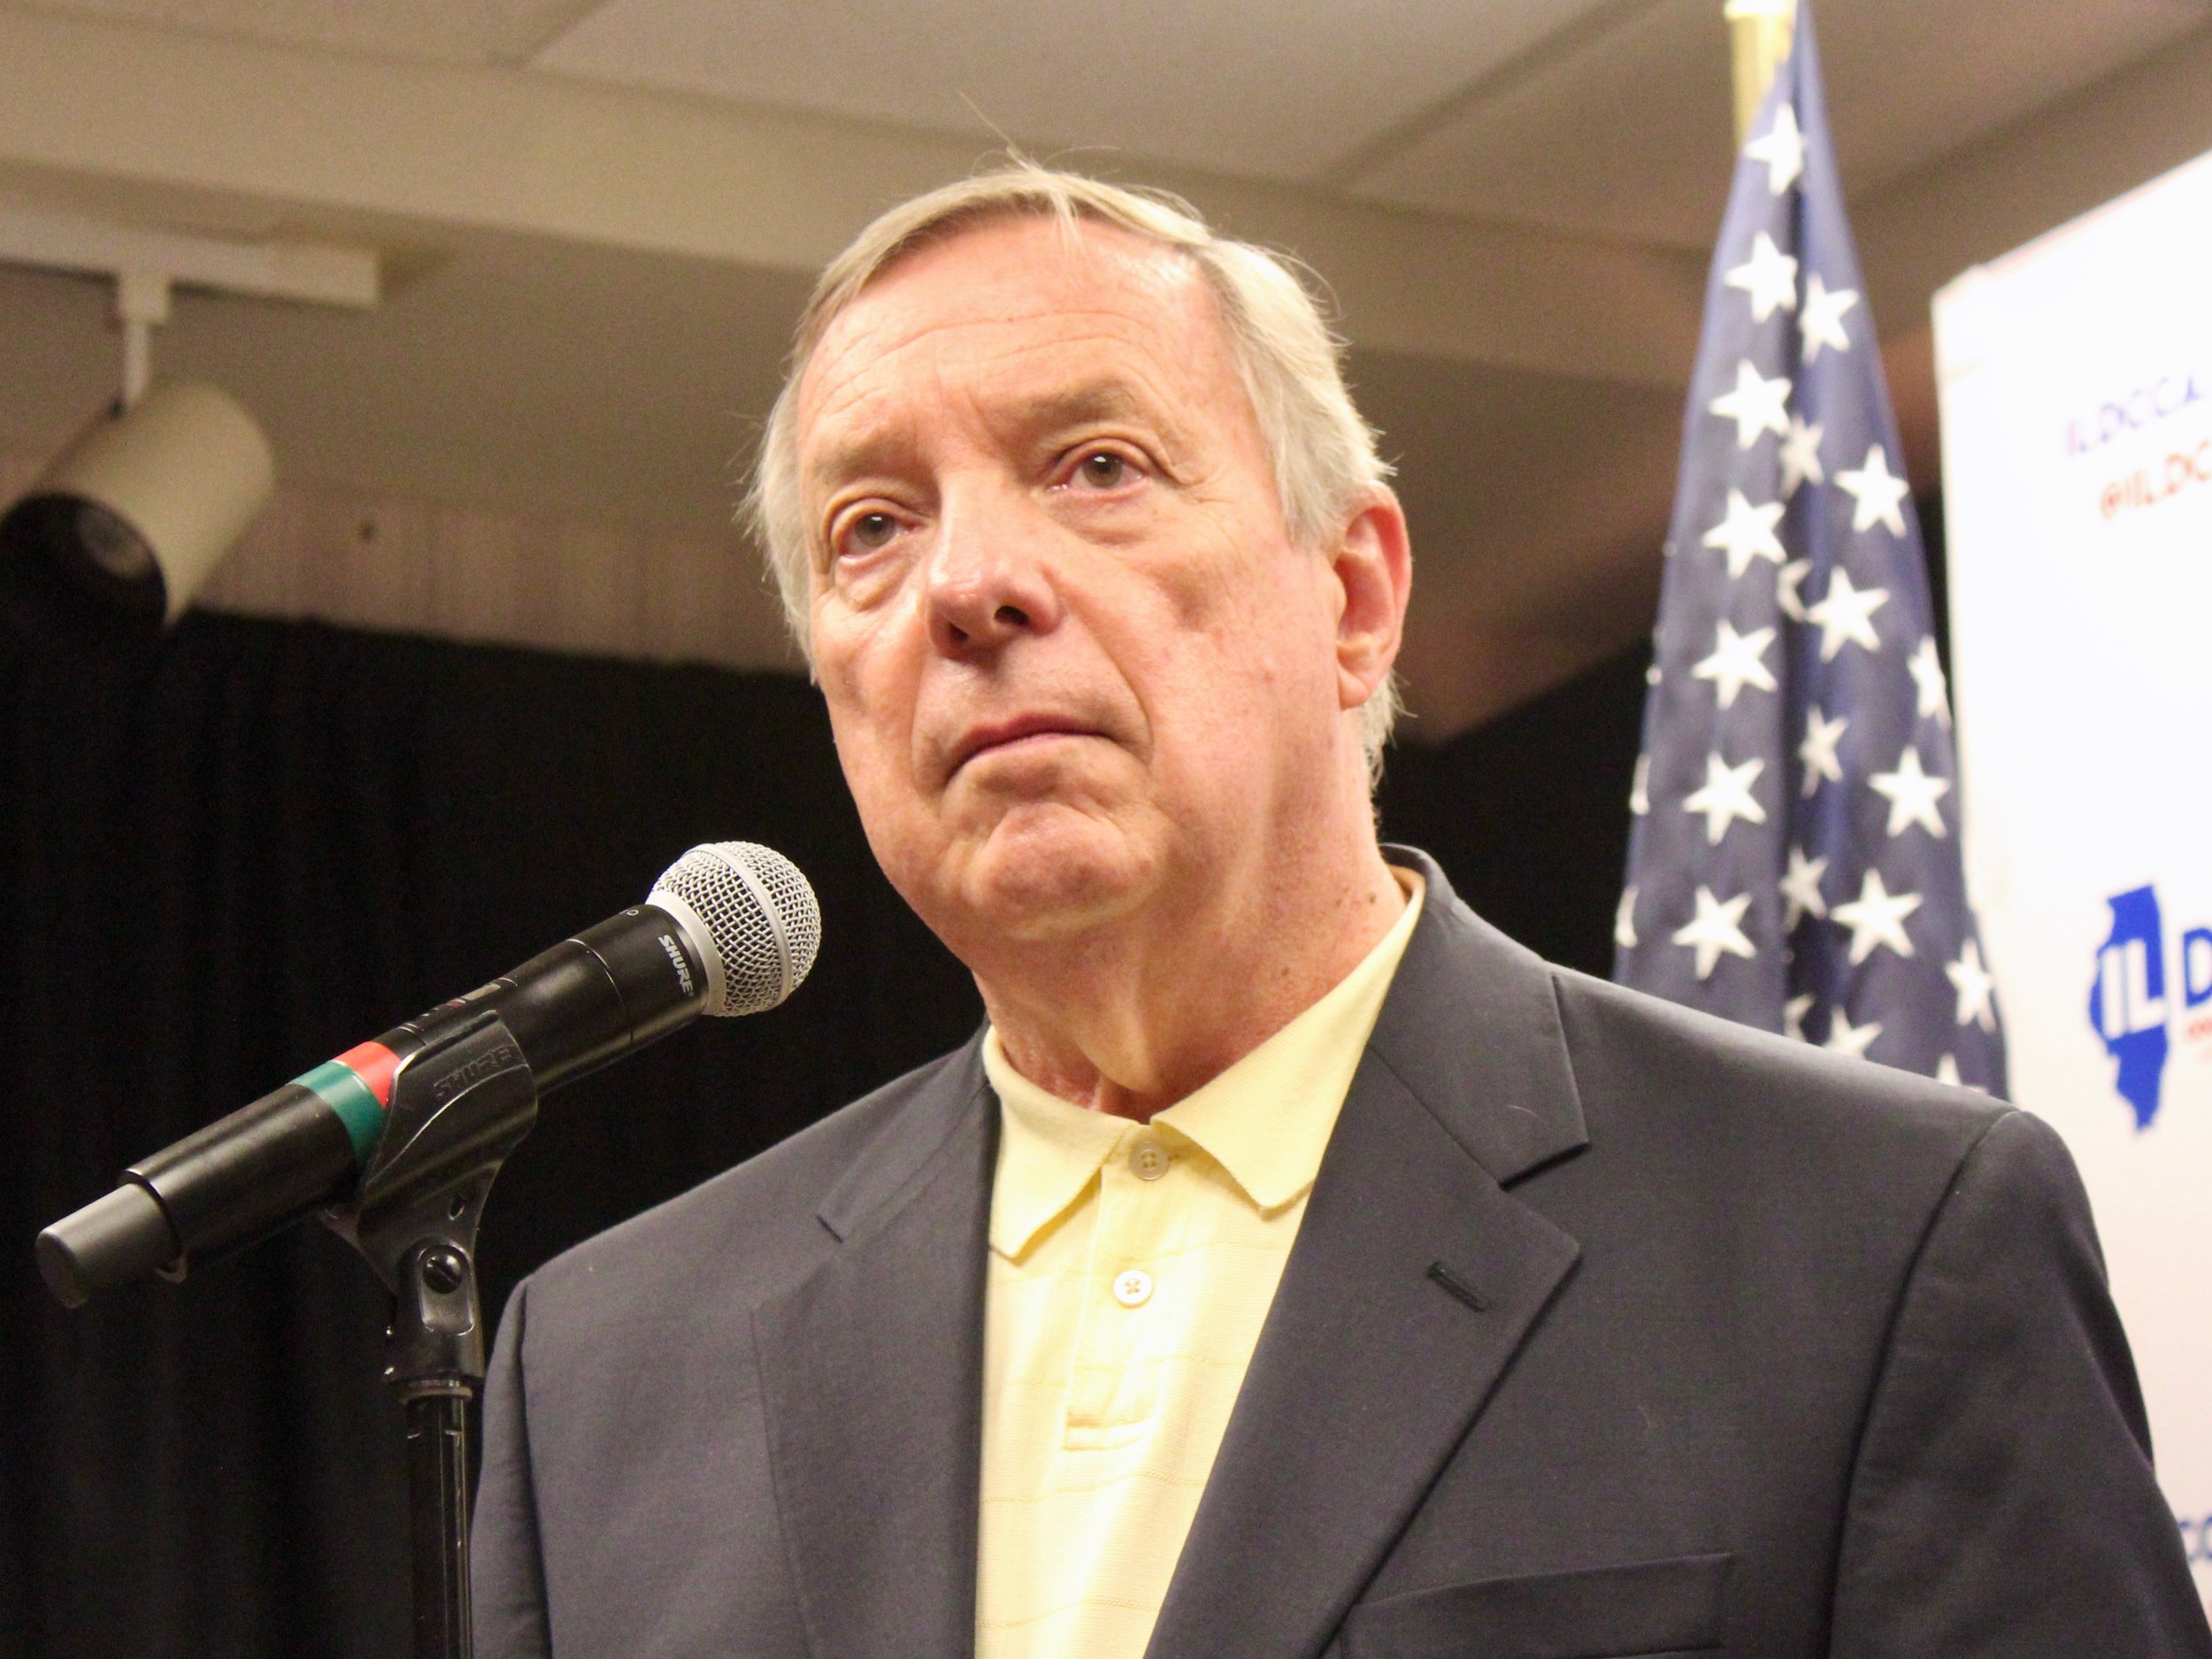 —Sen. Dick Durbin says he has to reassure constituents that things will be OK given the turbulence of the Trump administration. (One Illinois/Ted Cox)